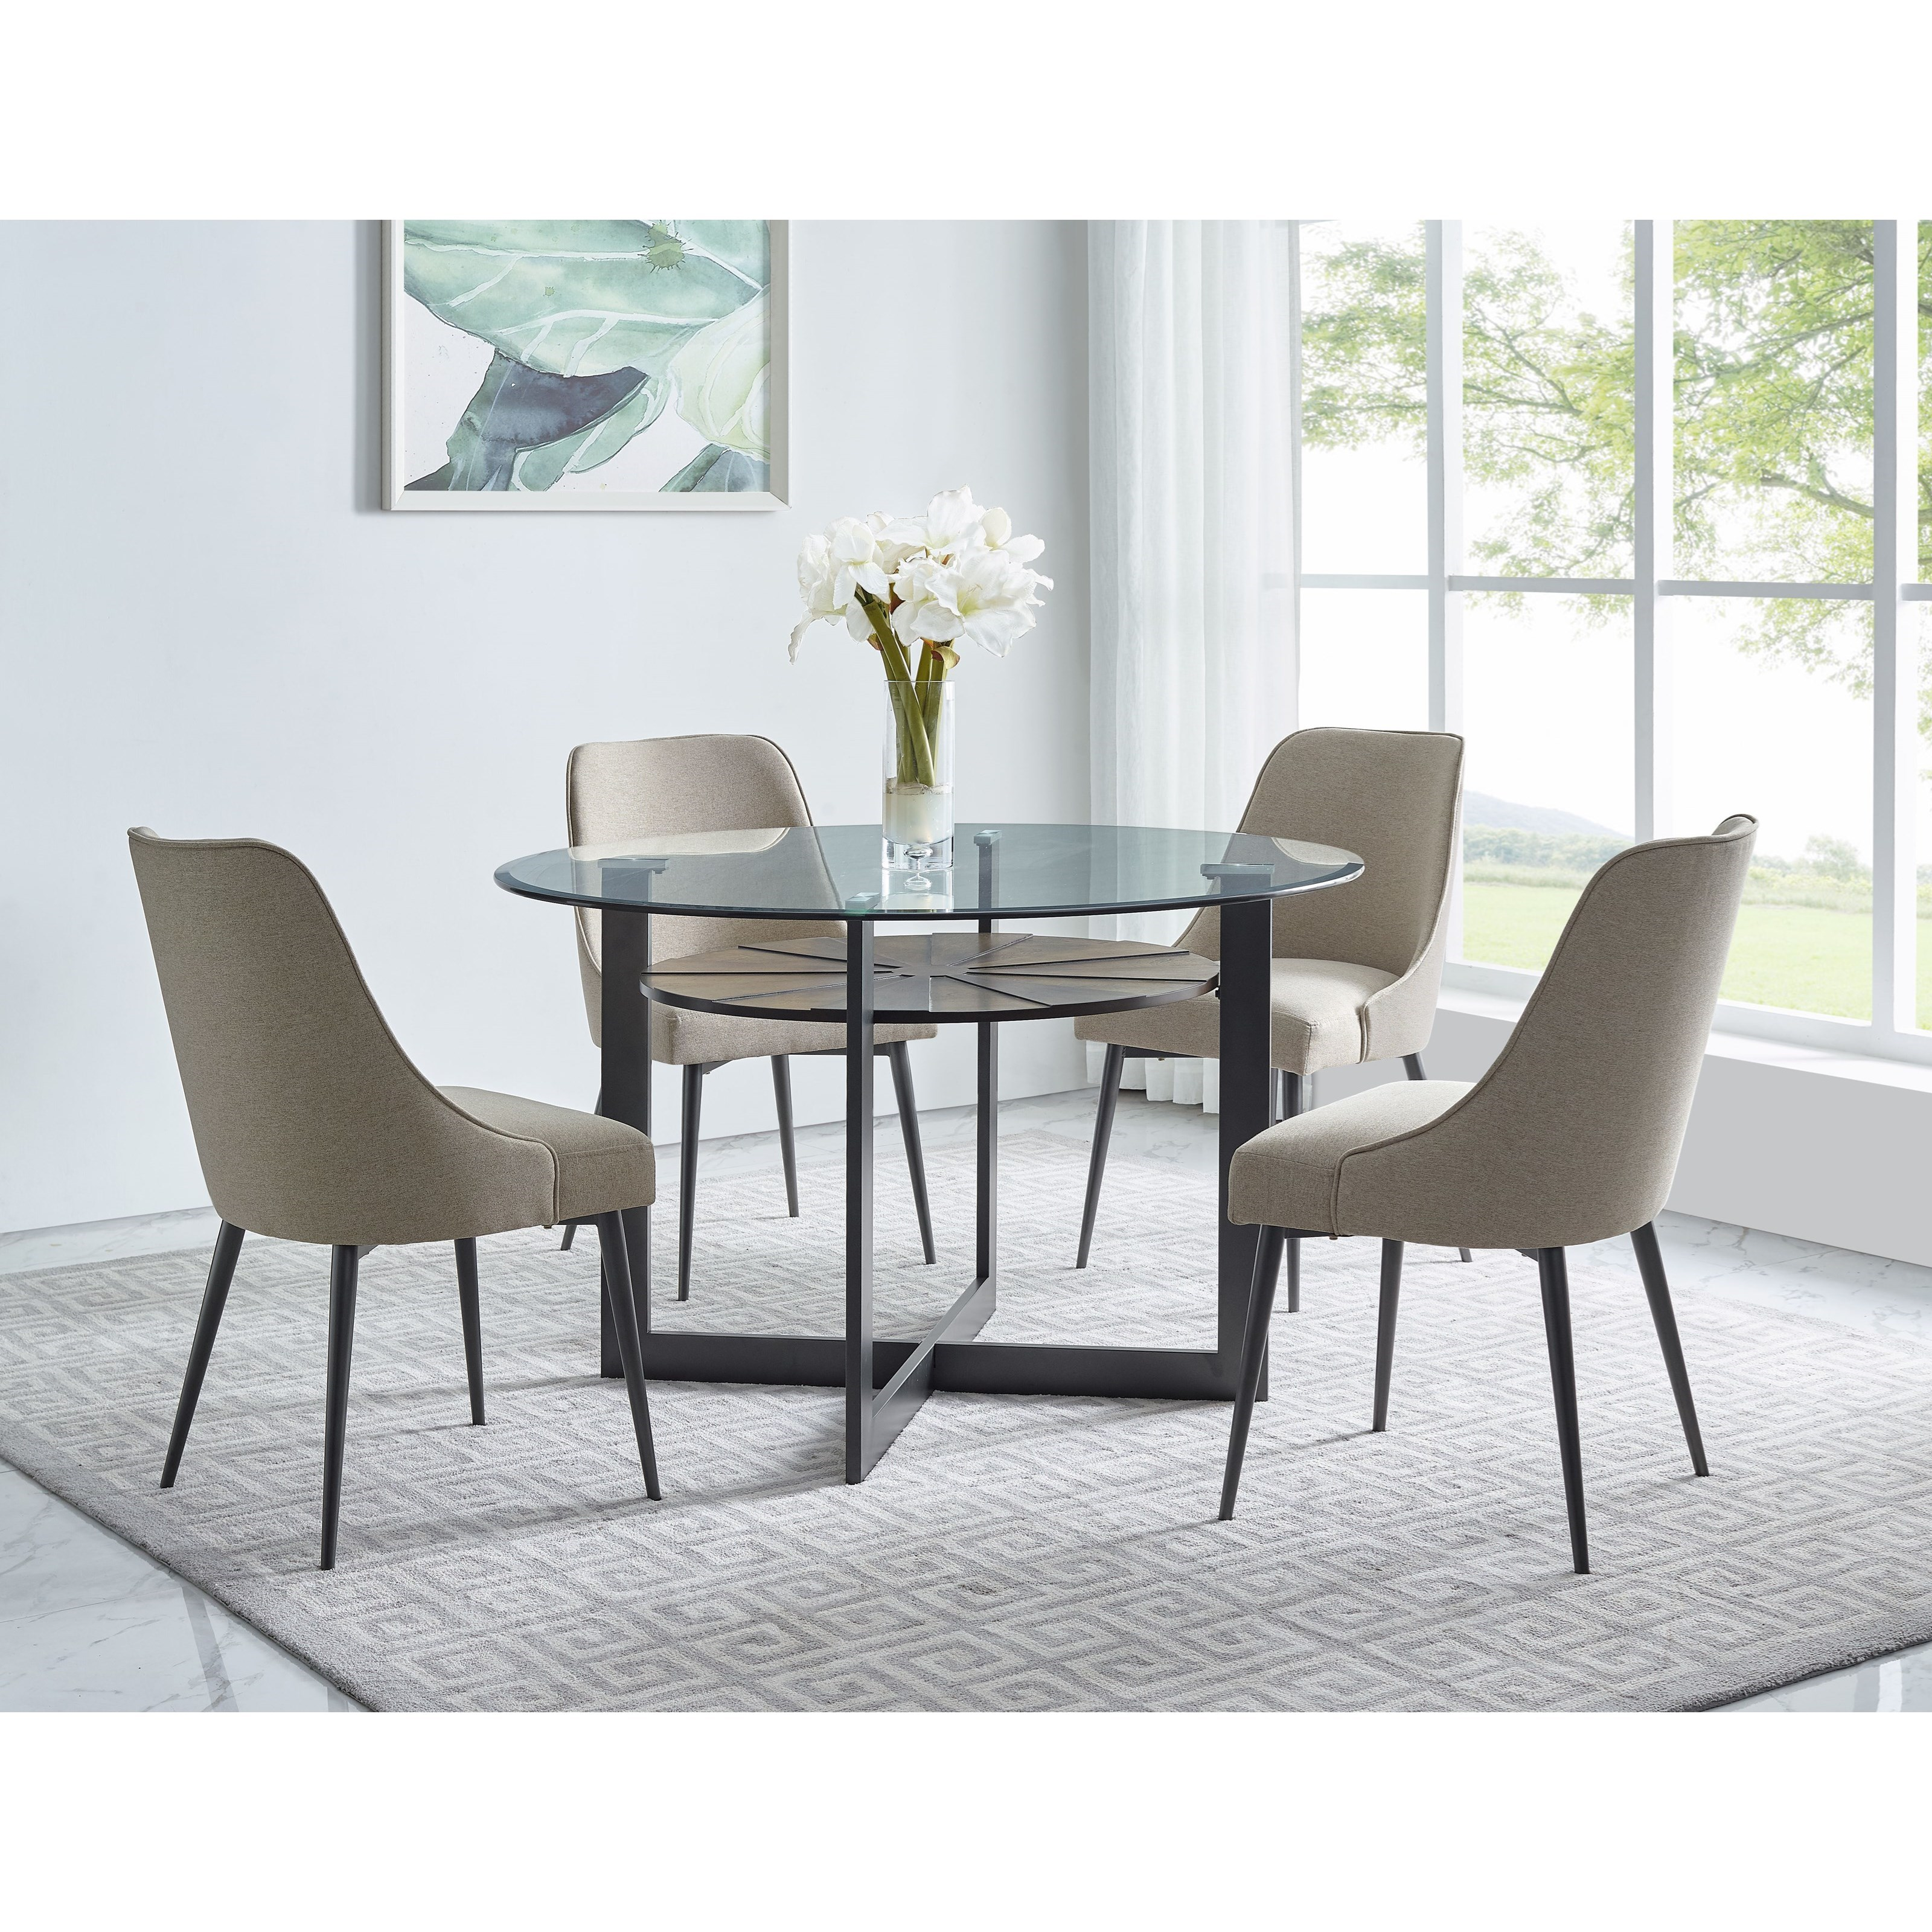 Olson SS 5 Piece Dining Set by Steve Silver at Darvin Furniture